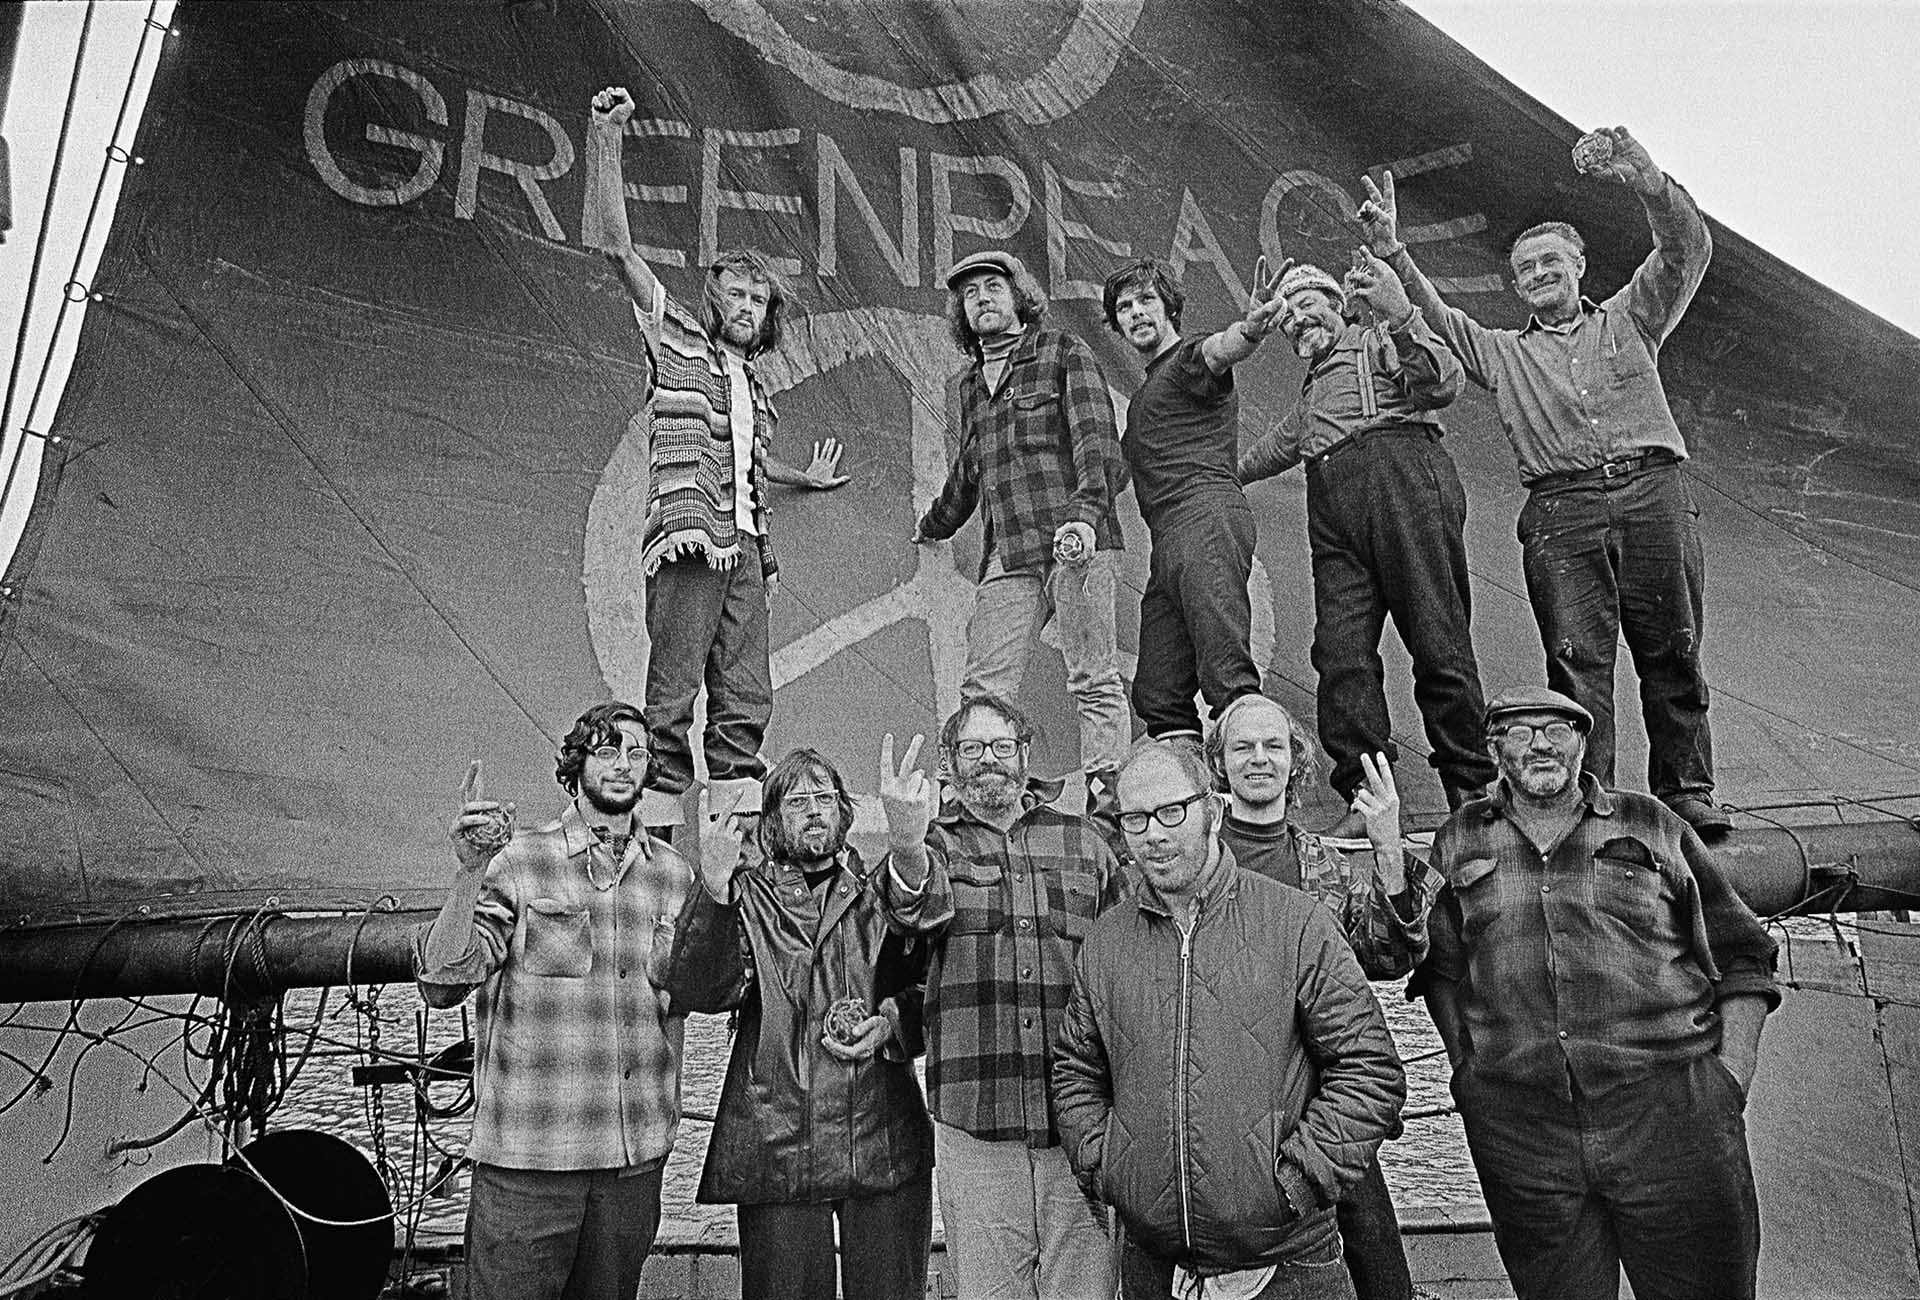 "The crew of the Phyllis Cormack (also called ""Greenpeace"") on-board the ship. Clockwise from top left: Bob Hunter, Patrick Moore, Bob Cummings, Ben Metcalfe, Dave Birmingham, John Cormack, Bill Darnell (who coined term 'Greenpeace'), Terry Simmons, Jim Bohlen, Lyle Thurston and Richard Fineberg. Photo by Robert Keziere."